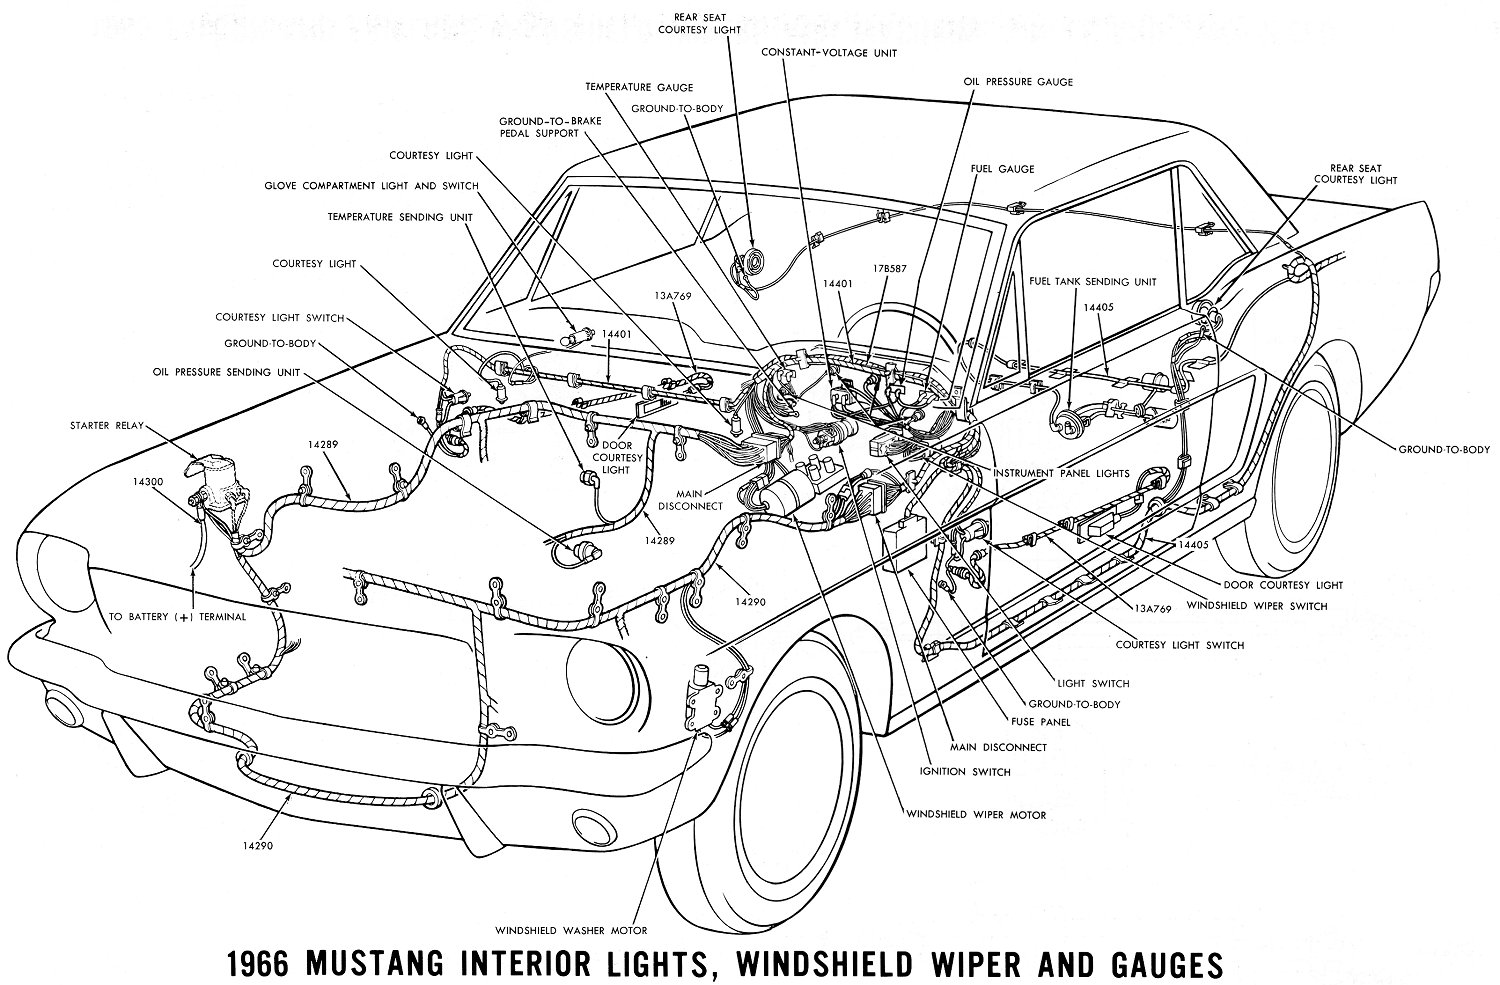 Lighting Circuit Diagram Mustang 1966 - DIY Enthusiasts Wiring ...